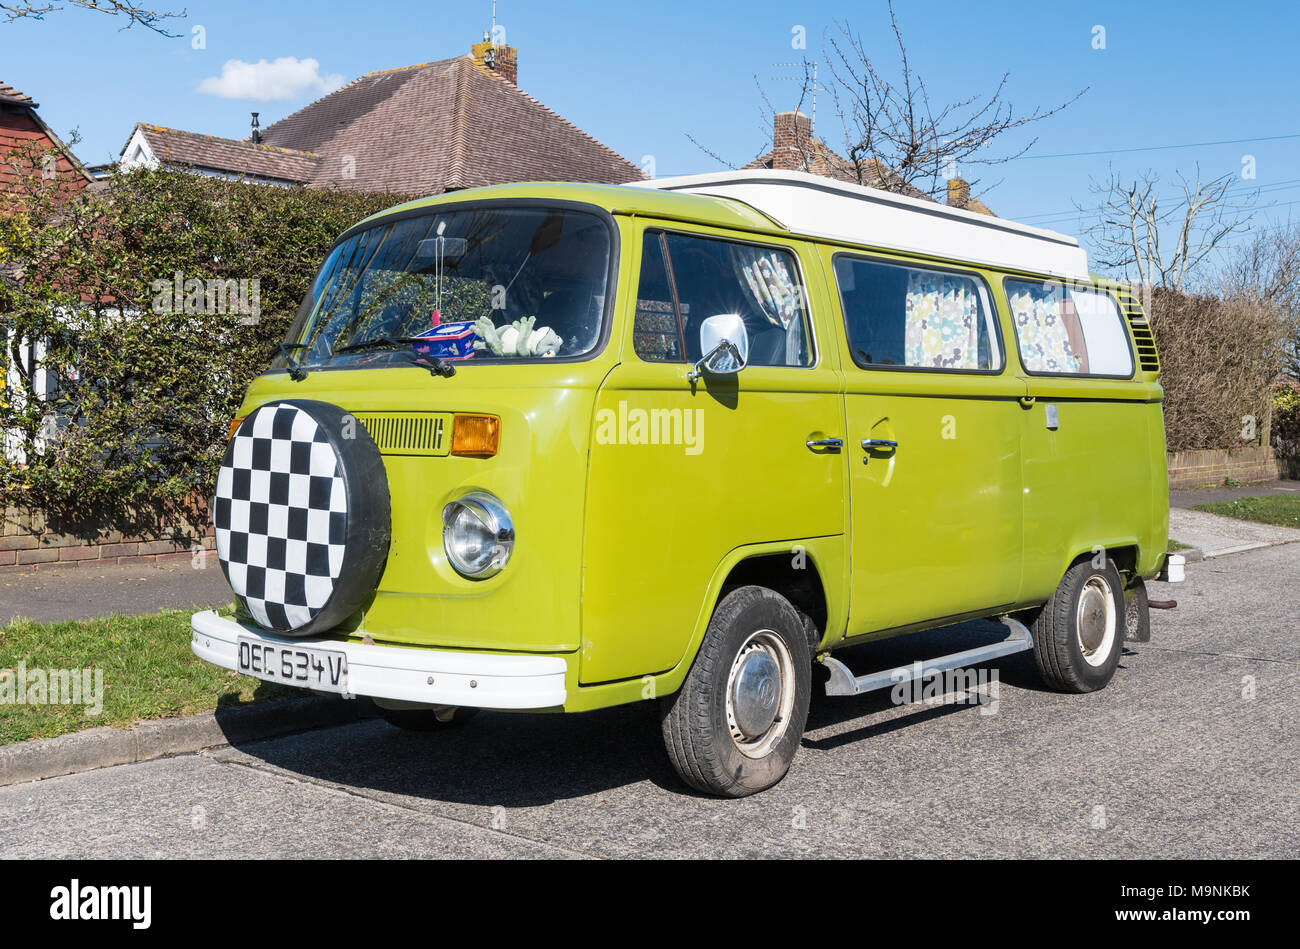 Volkswagen Camper Van (car) Type 2 (T2 or T2b) with a hard top built in 1979 in green, parked on a roadside in the UK. - Stock Image